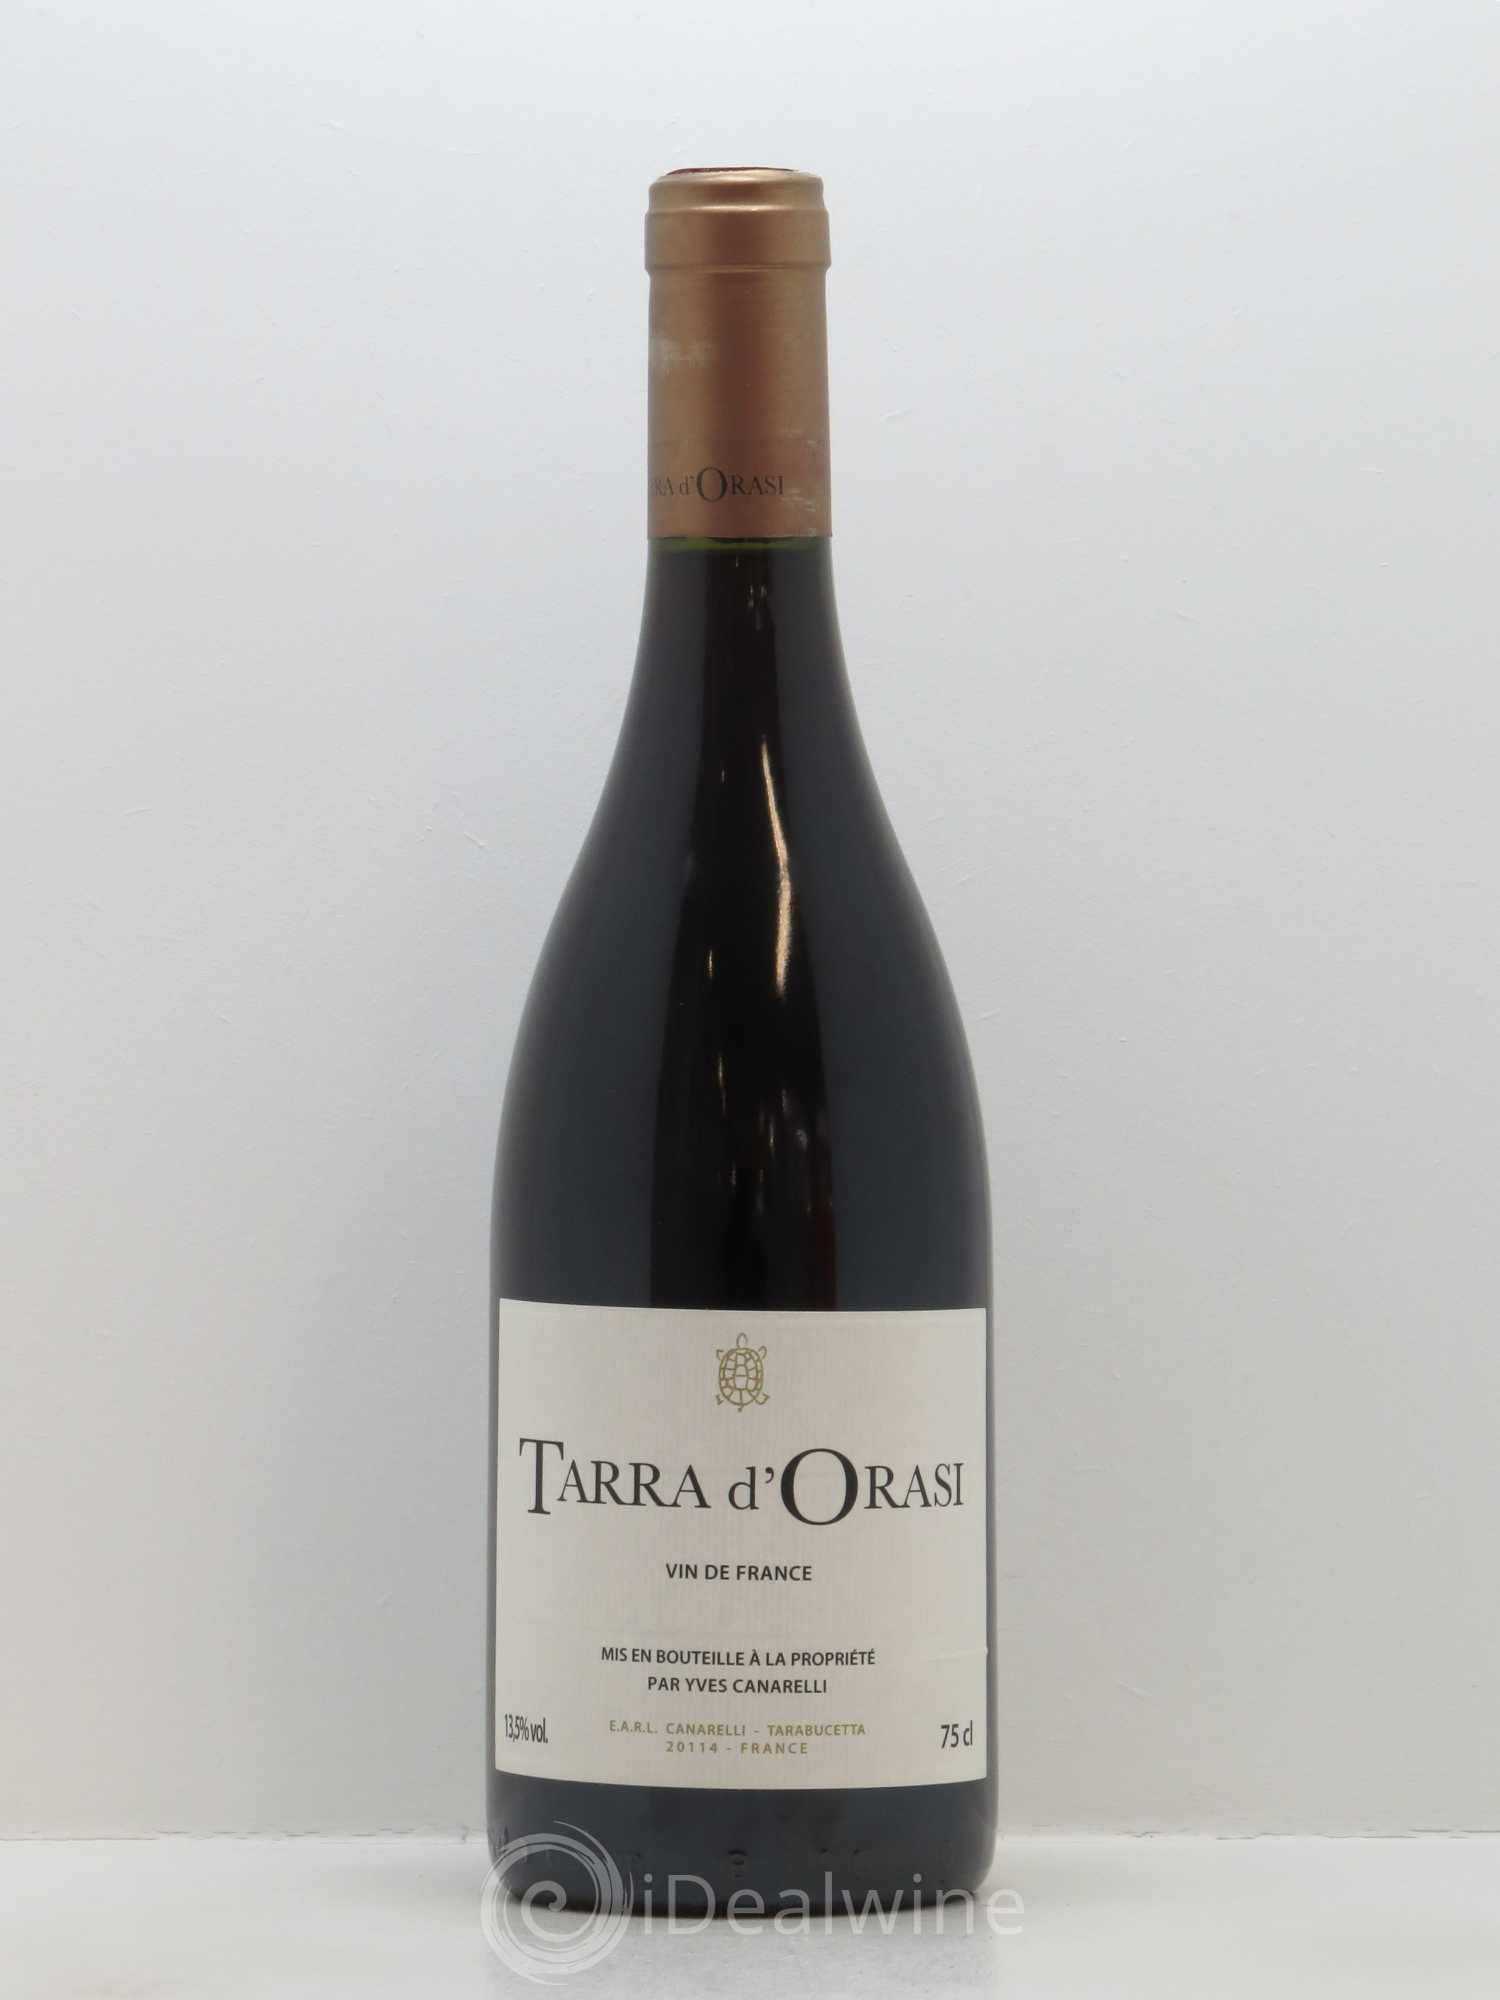 Vin de France Tara d'Orasi Clos Canarelli  2015 - Lot of 1 Bottle